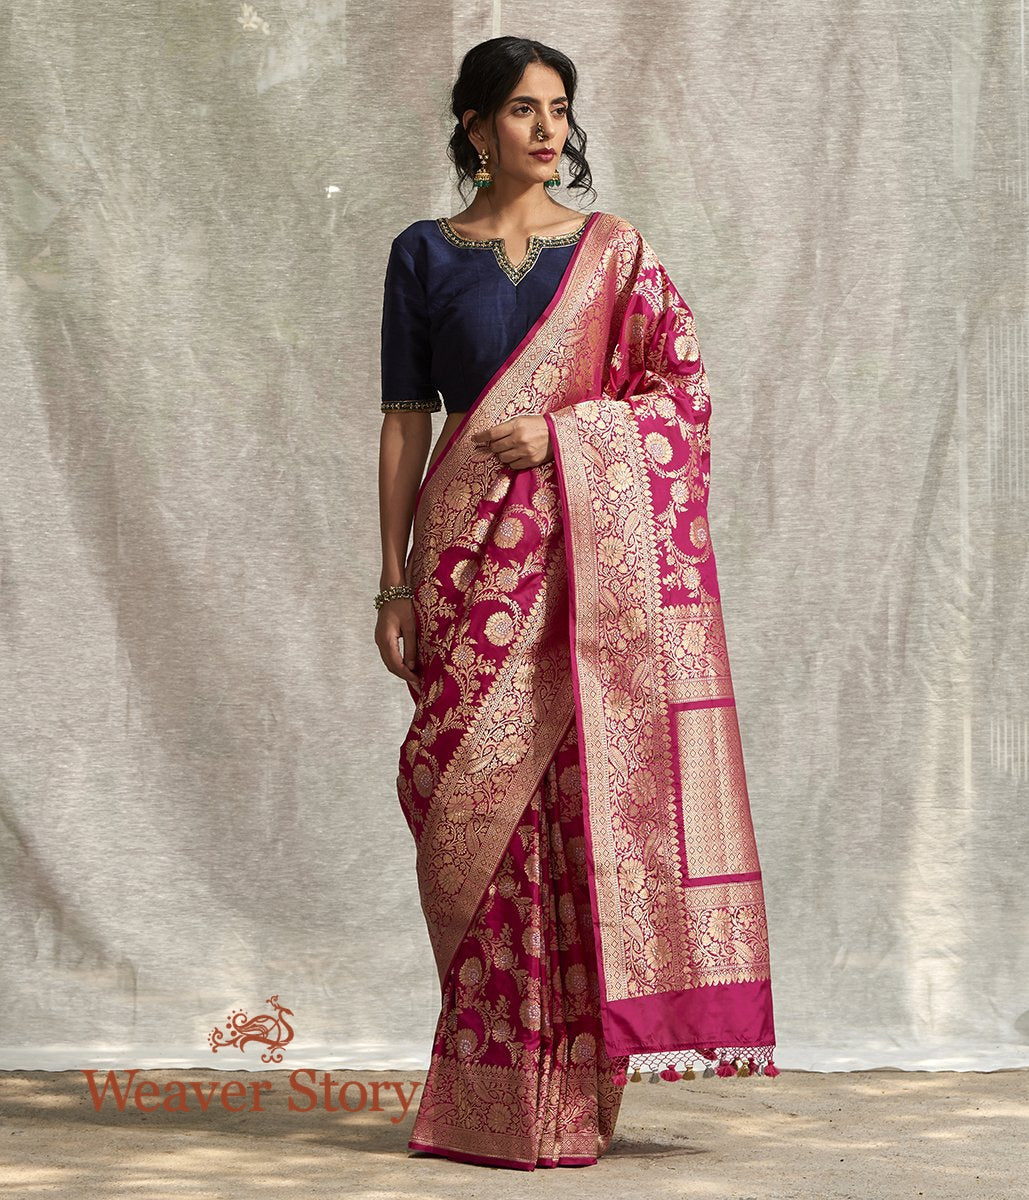 Handwoven Pink Banarasi Jangla Saree with all over Gold Zari Weave